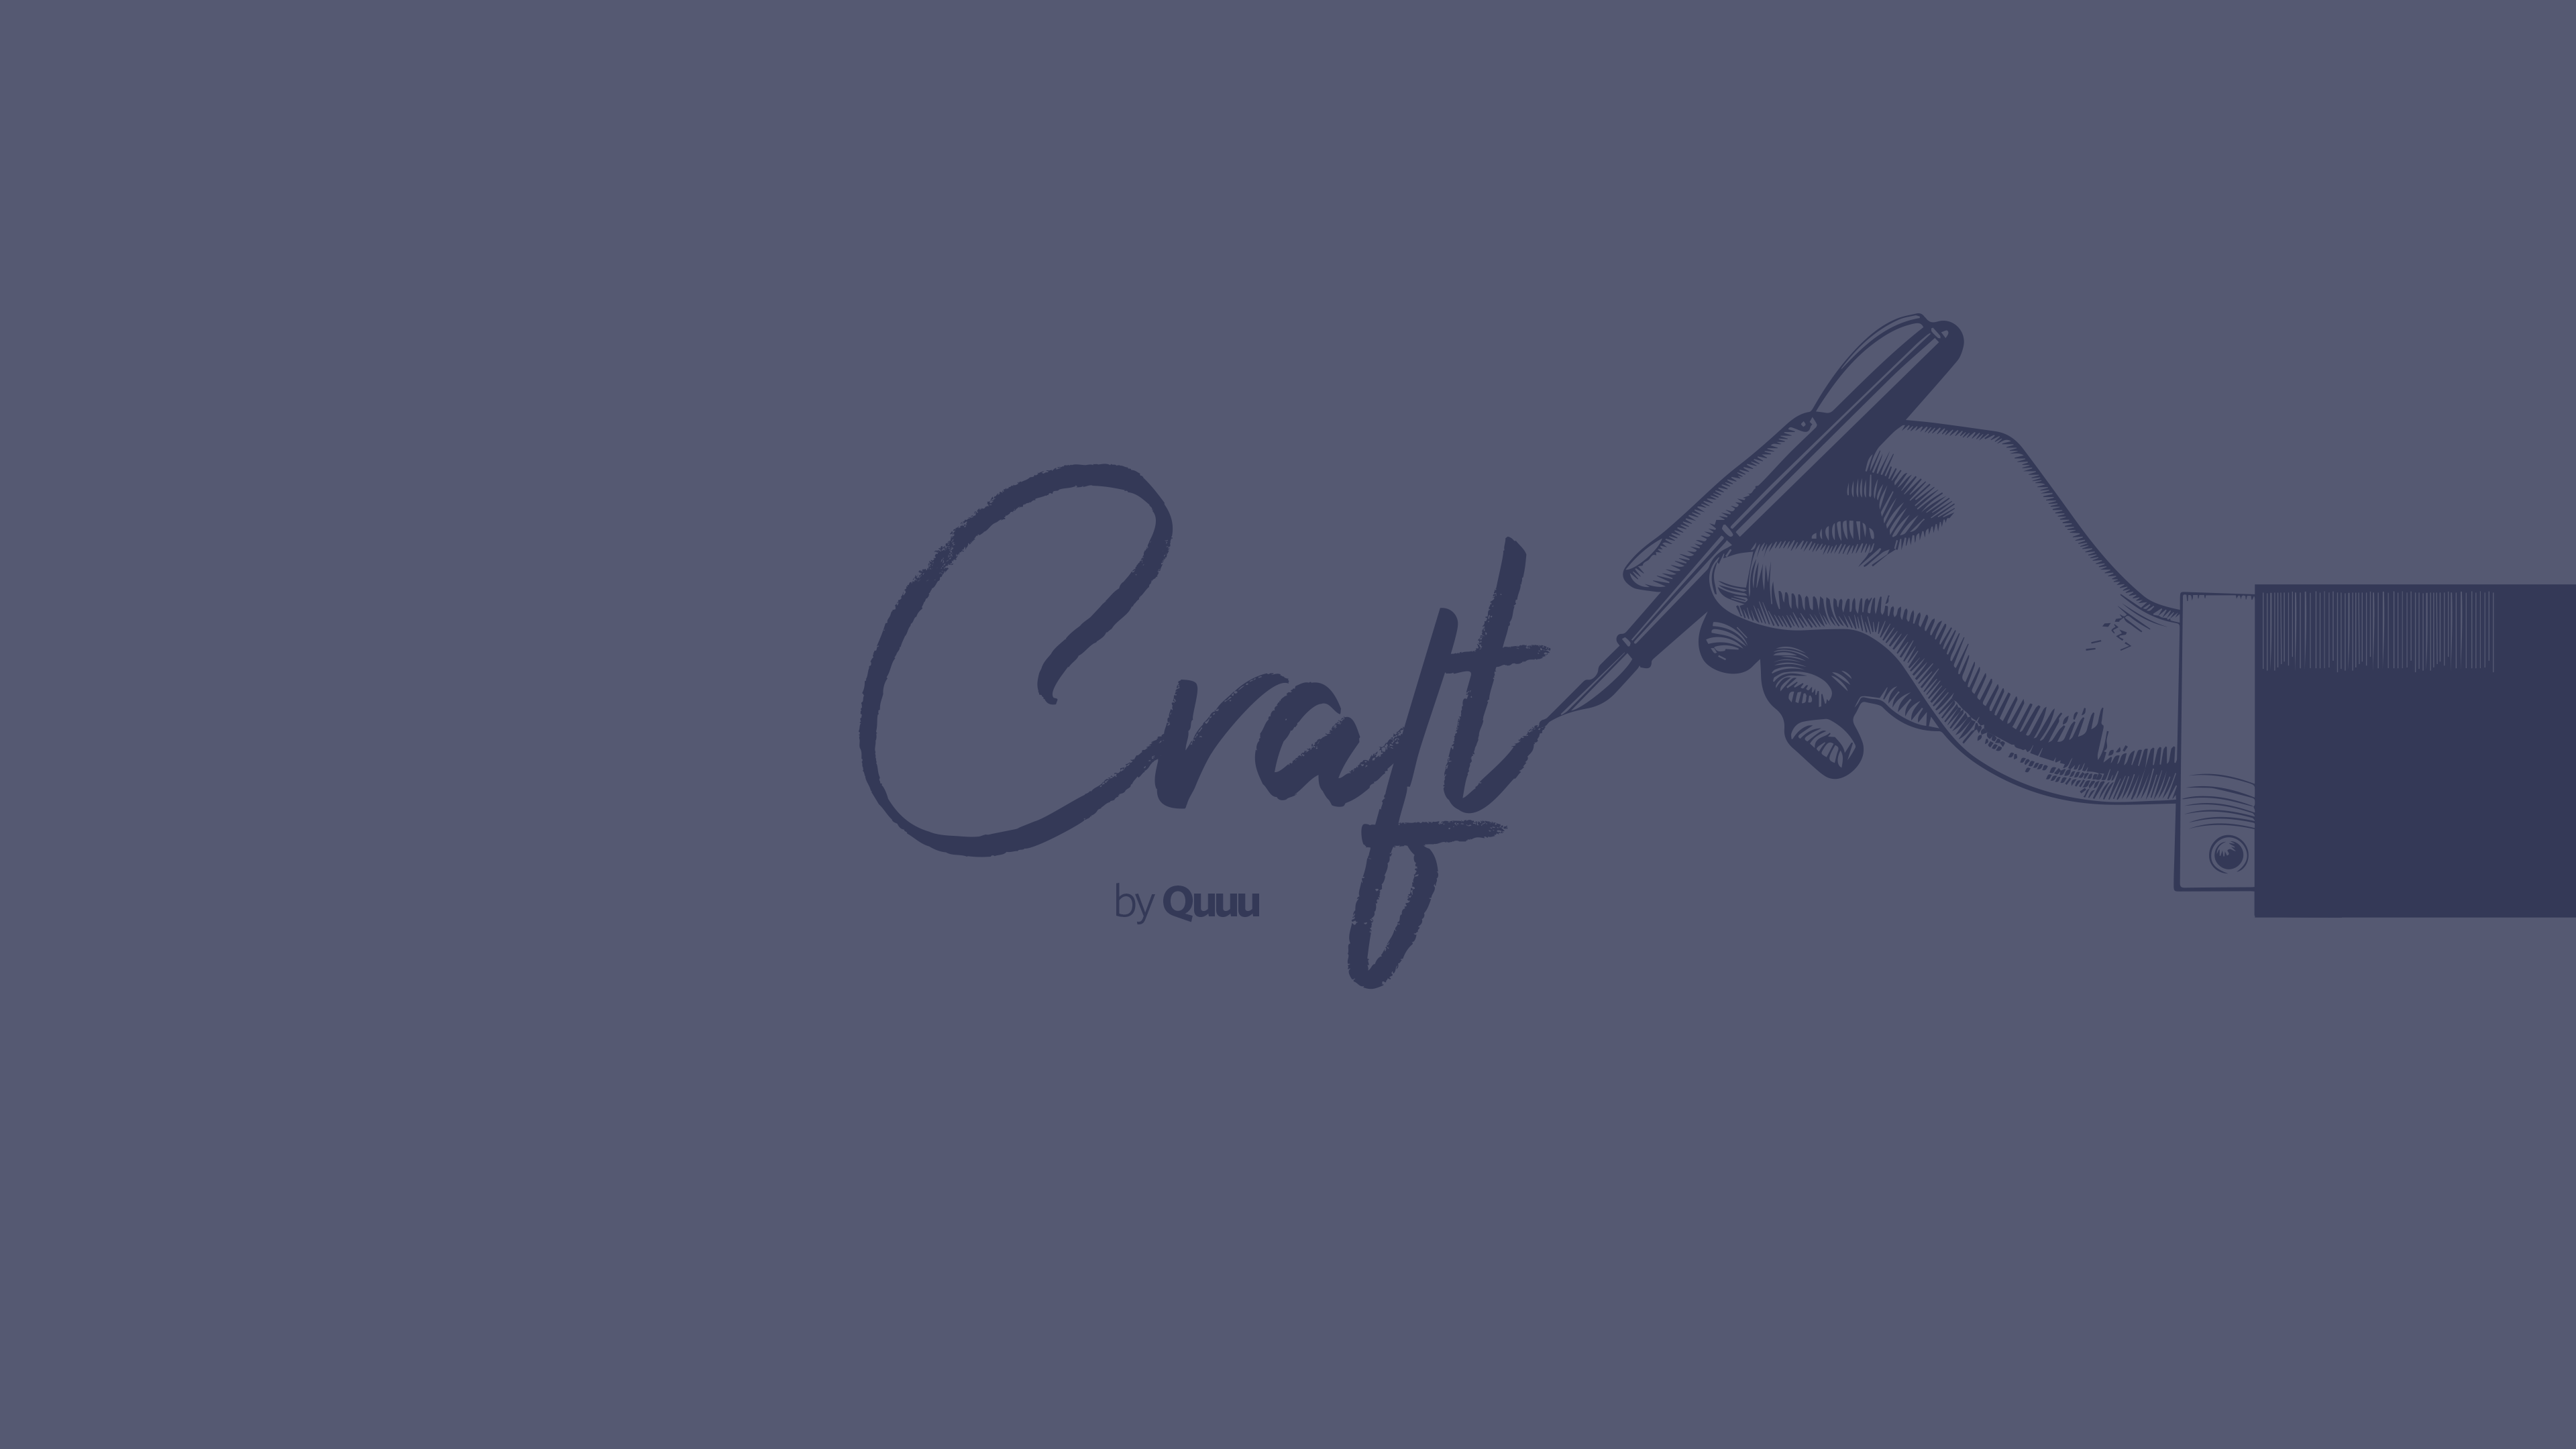 Craft by Quuu